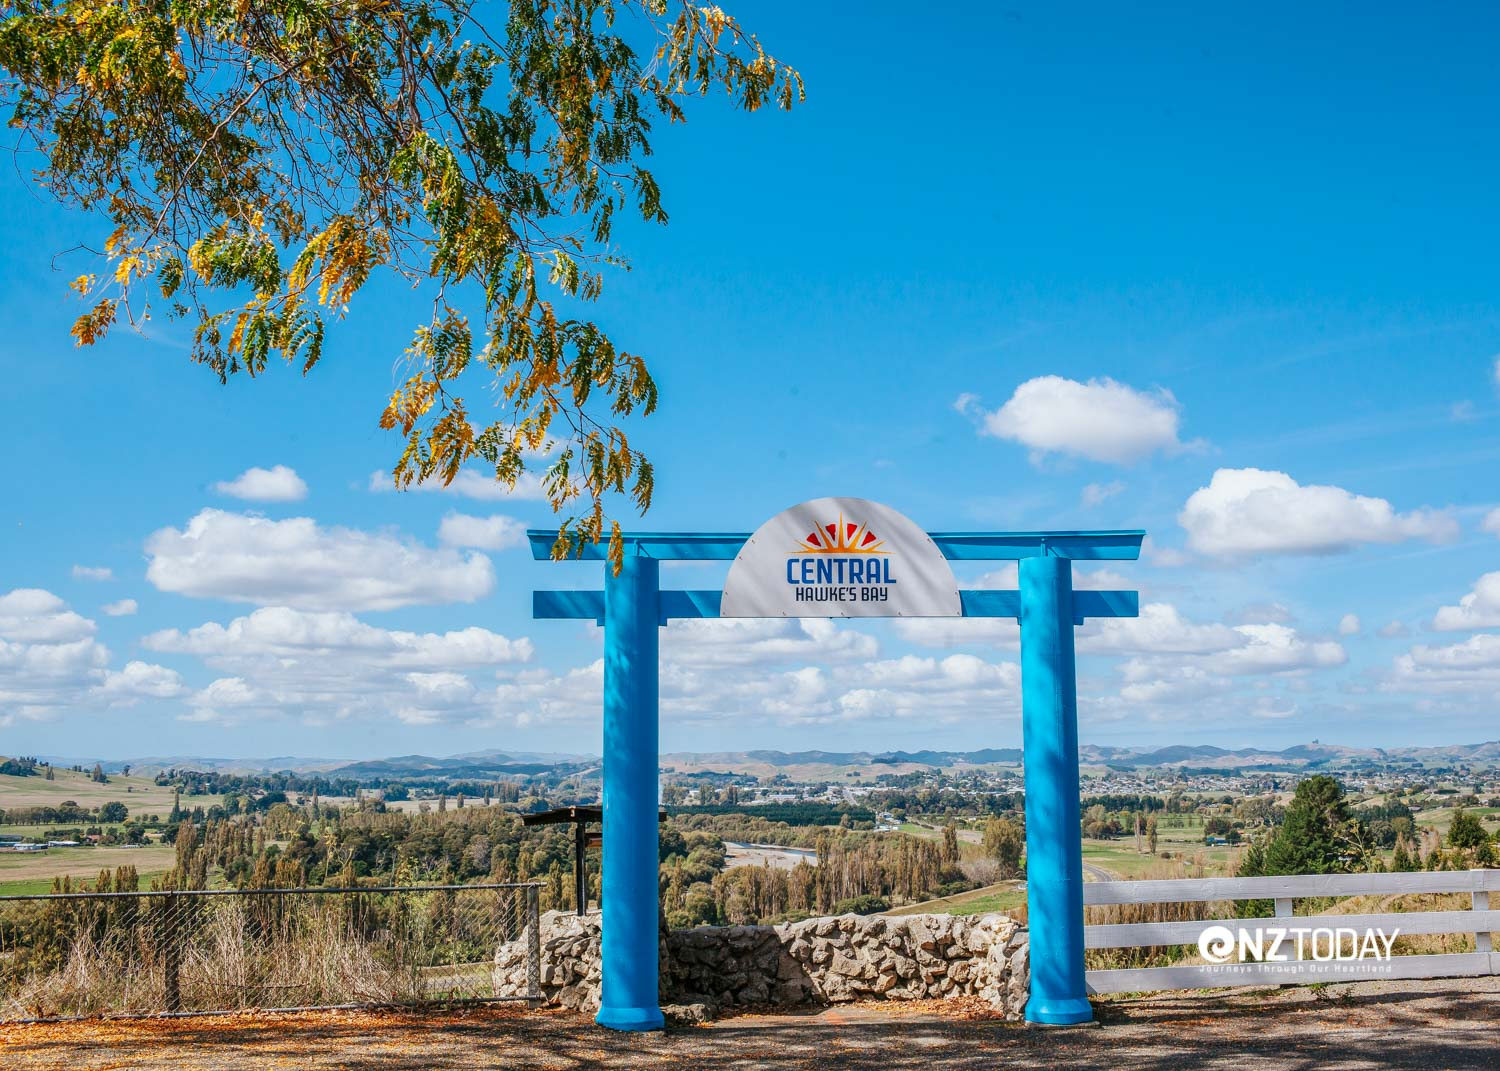 The entrance to Waipukurau overlooking the town from the north